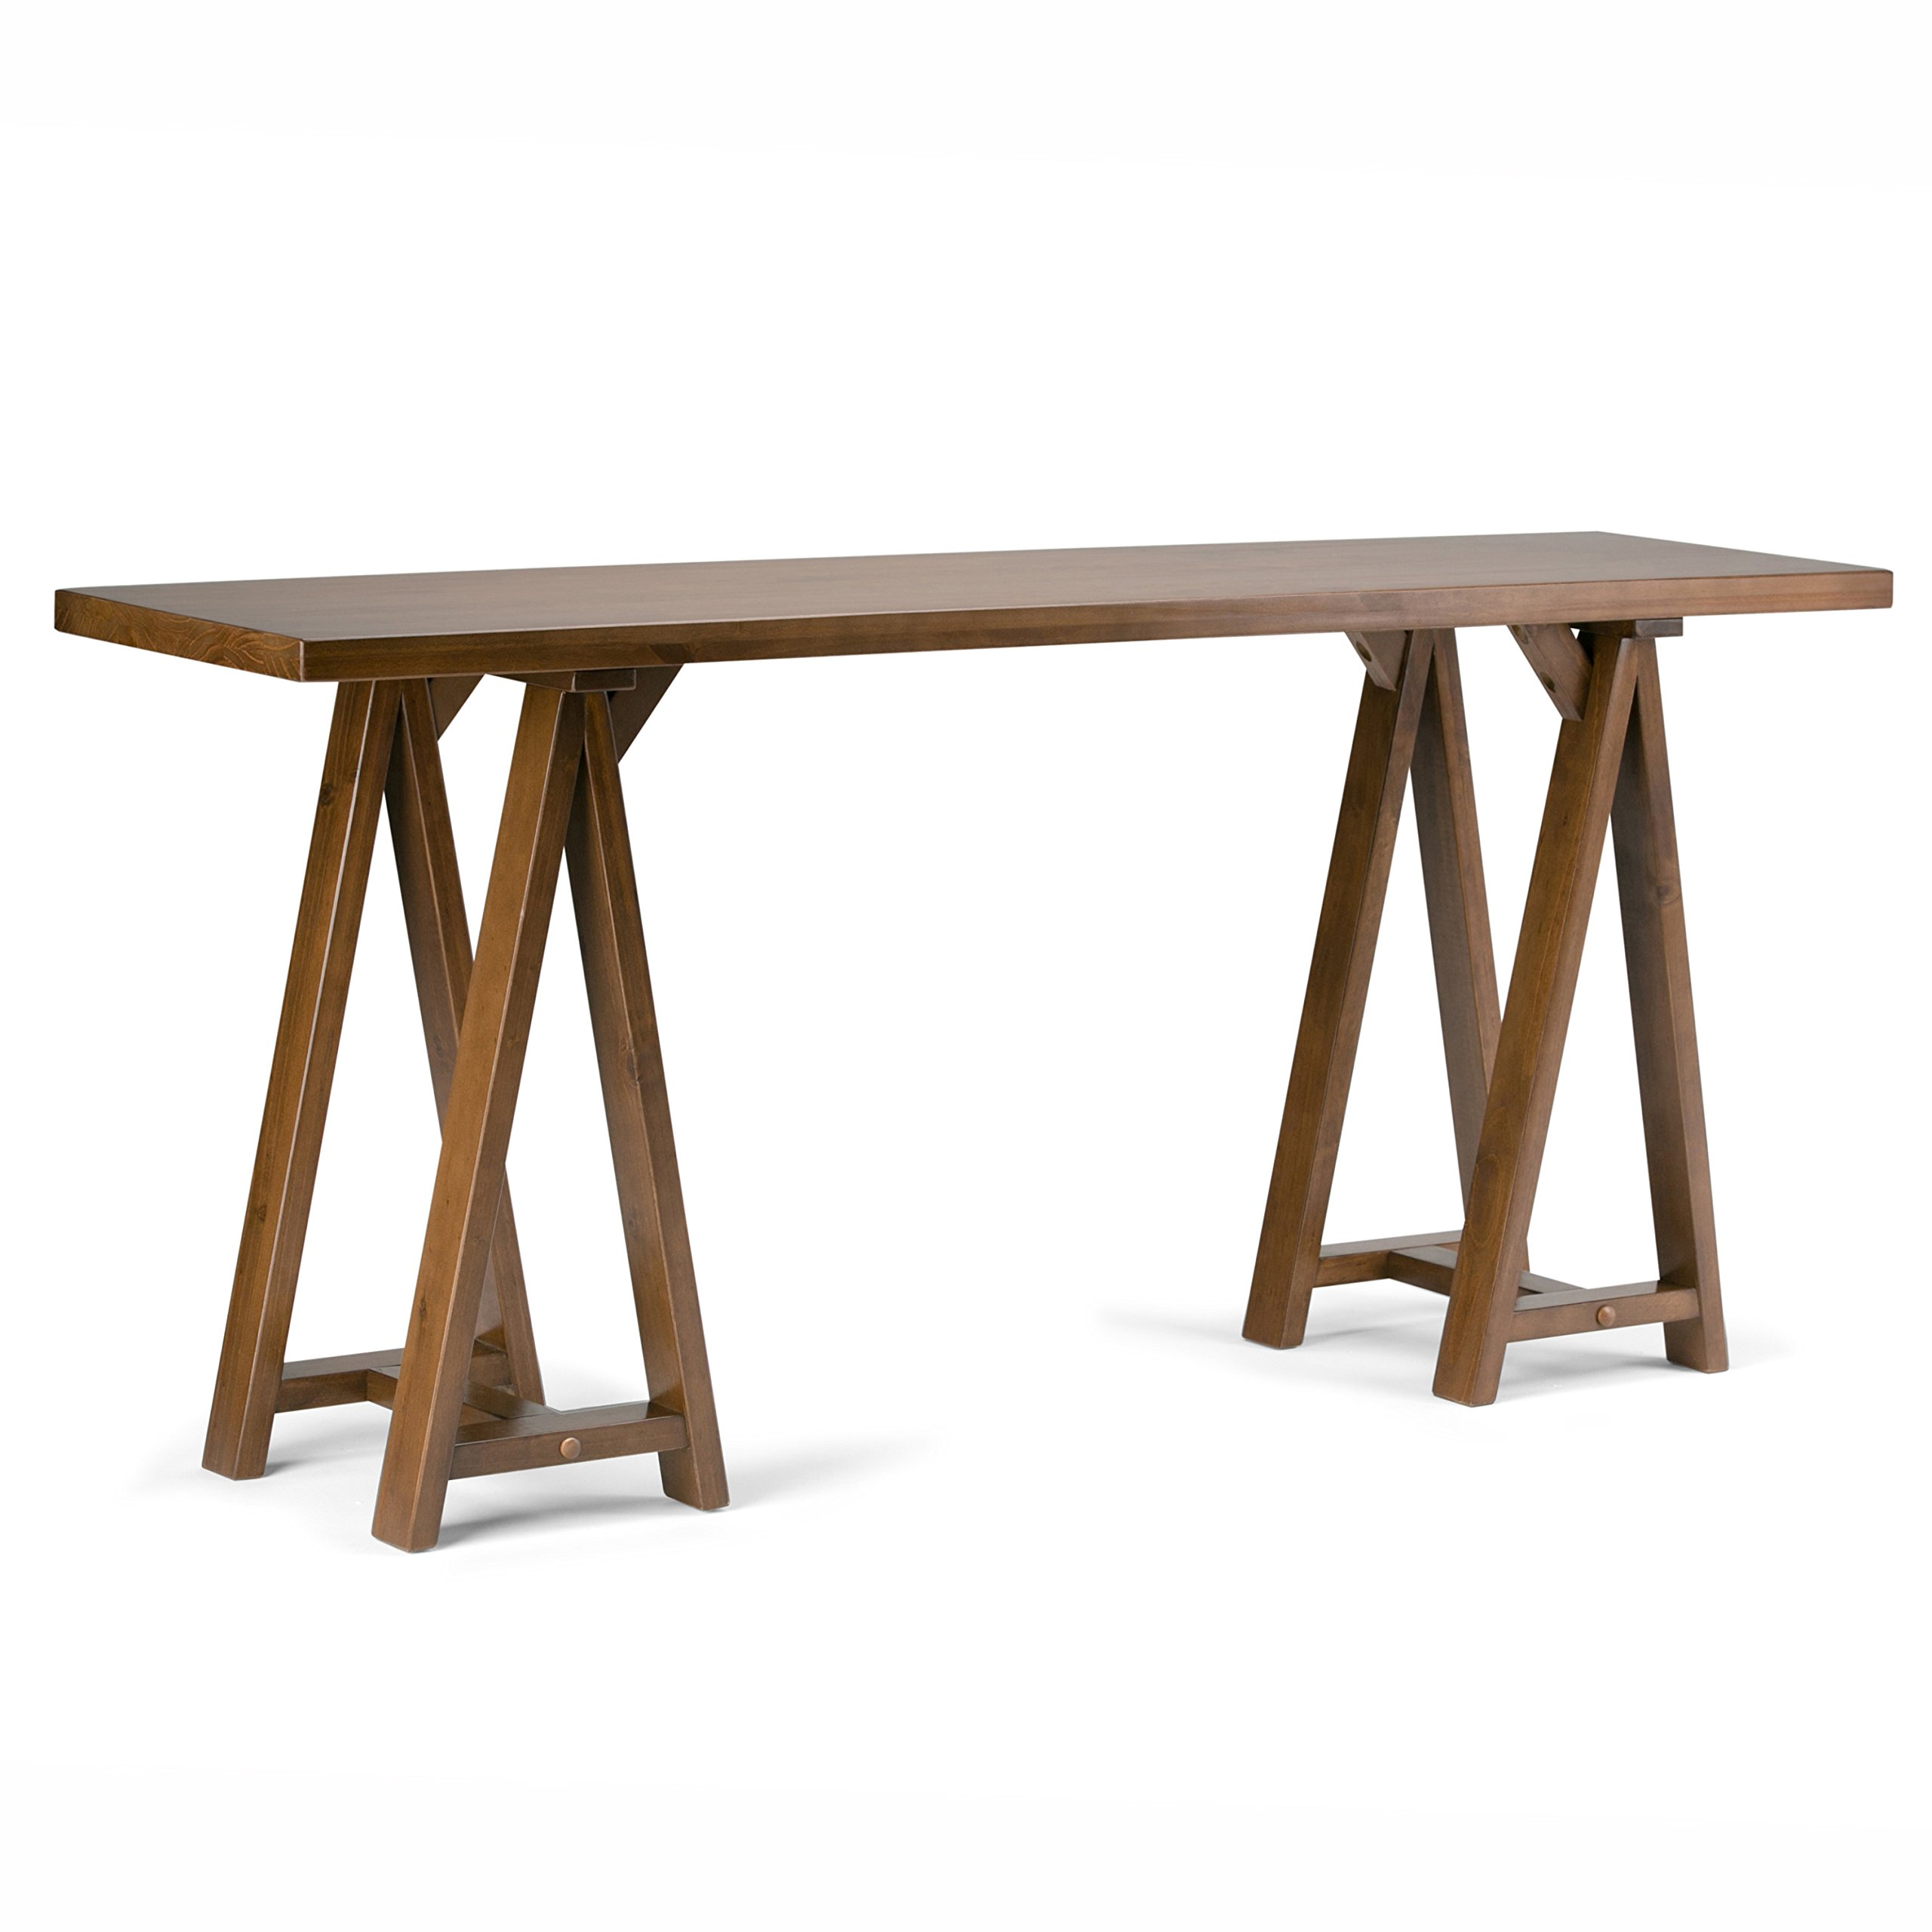 Simpli Home Sawhorse Solid Wood Wide Console Sofa Table, Medium Saddle Brown by Simpli Home (Image #1)